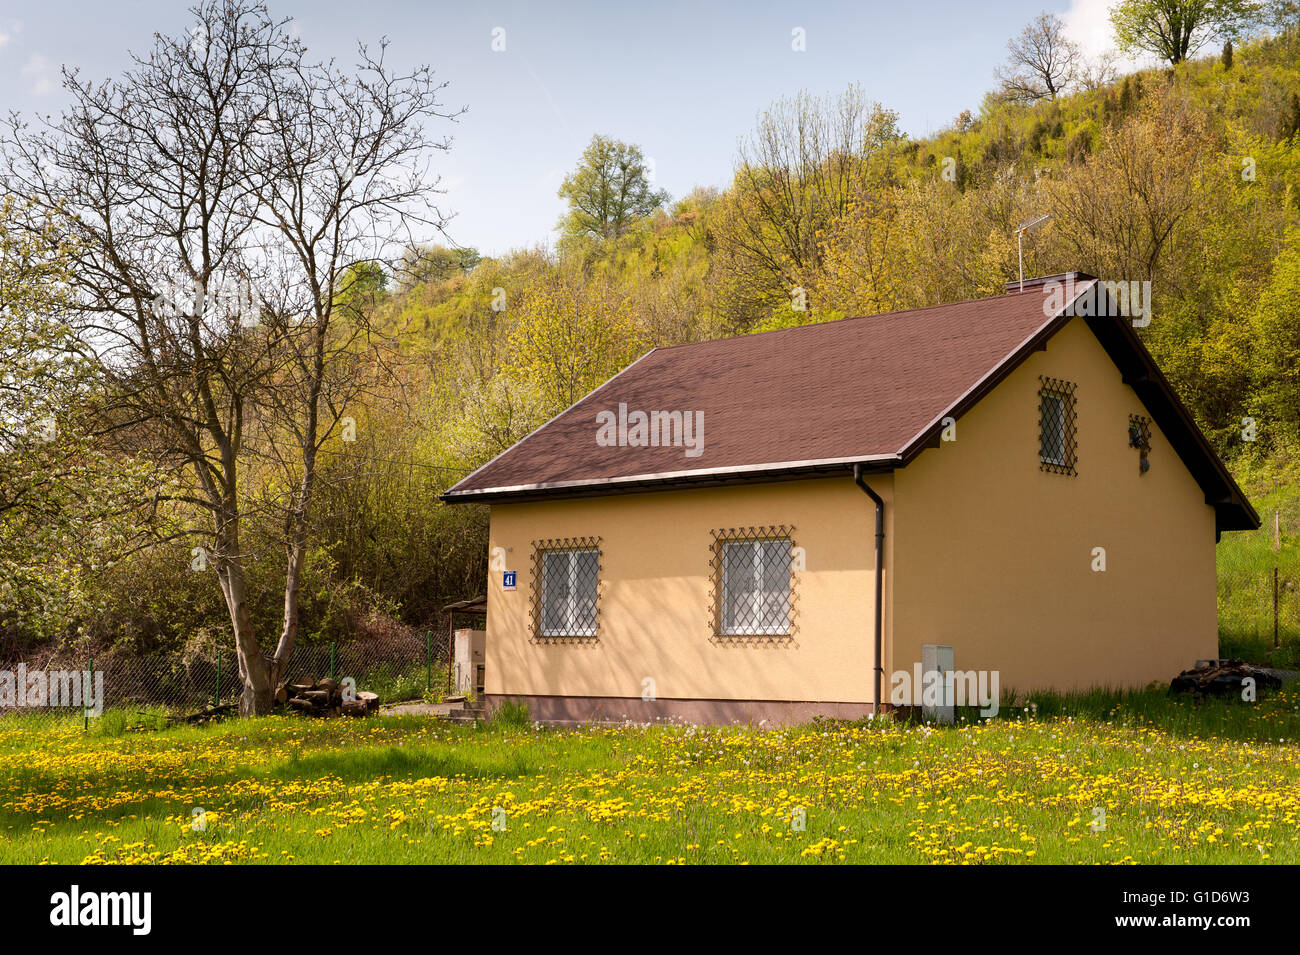 Little house building in spring natural landscape, house backyard below the hillside in Janowiec in Poland, Europe, - Stock Image